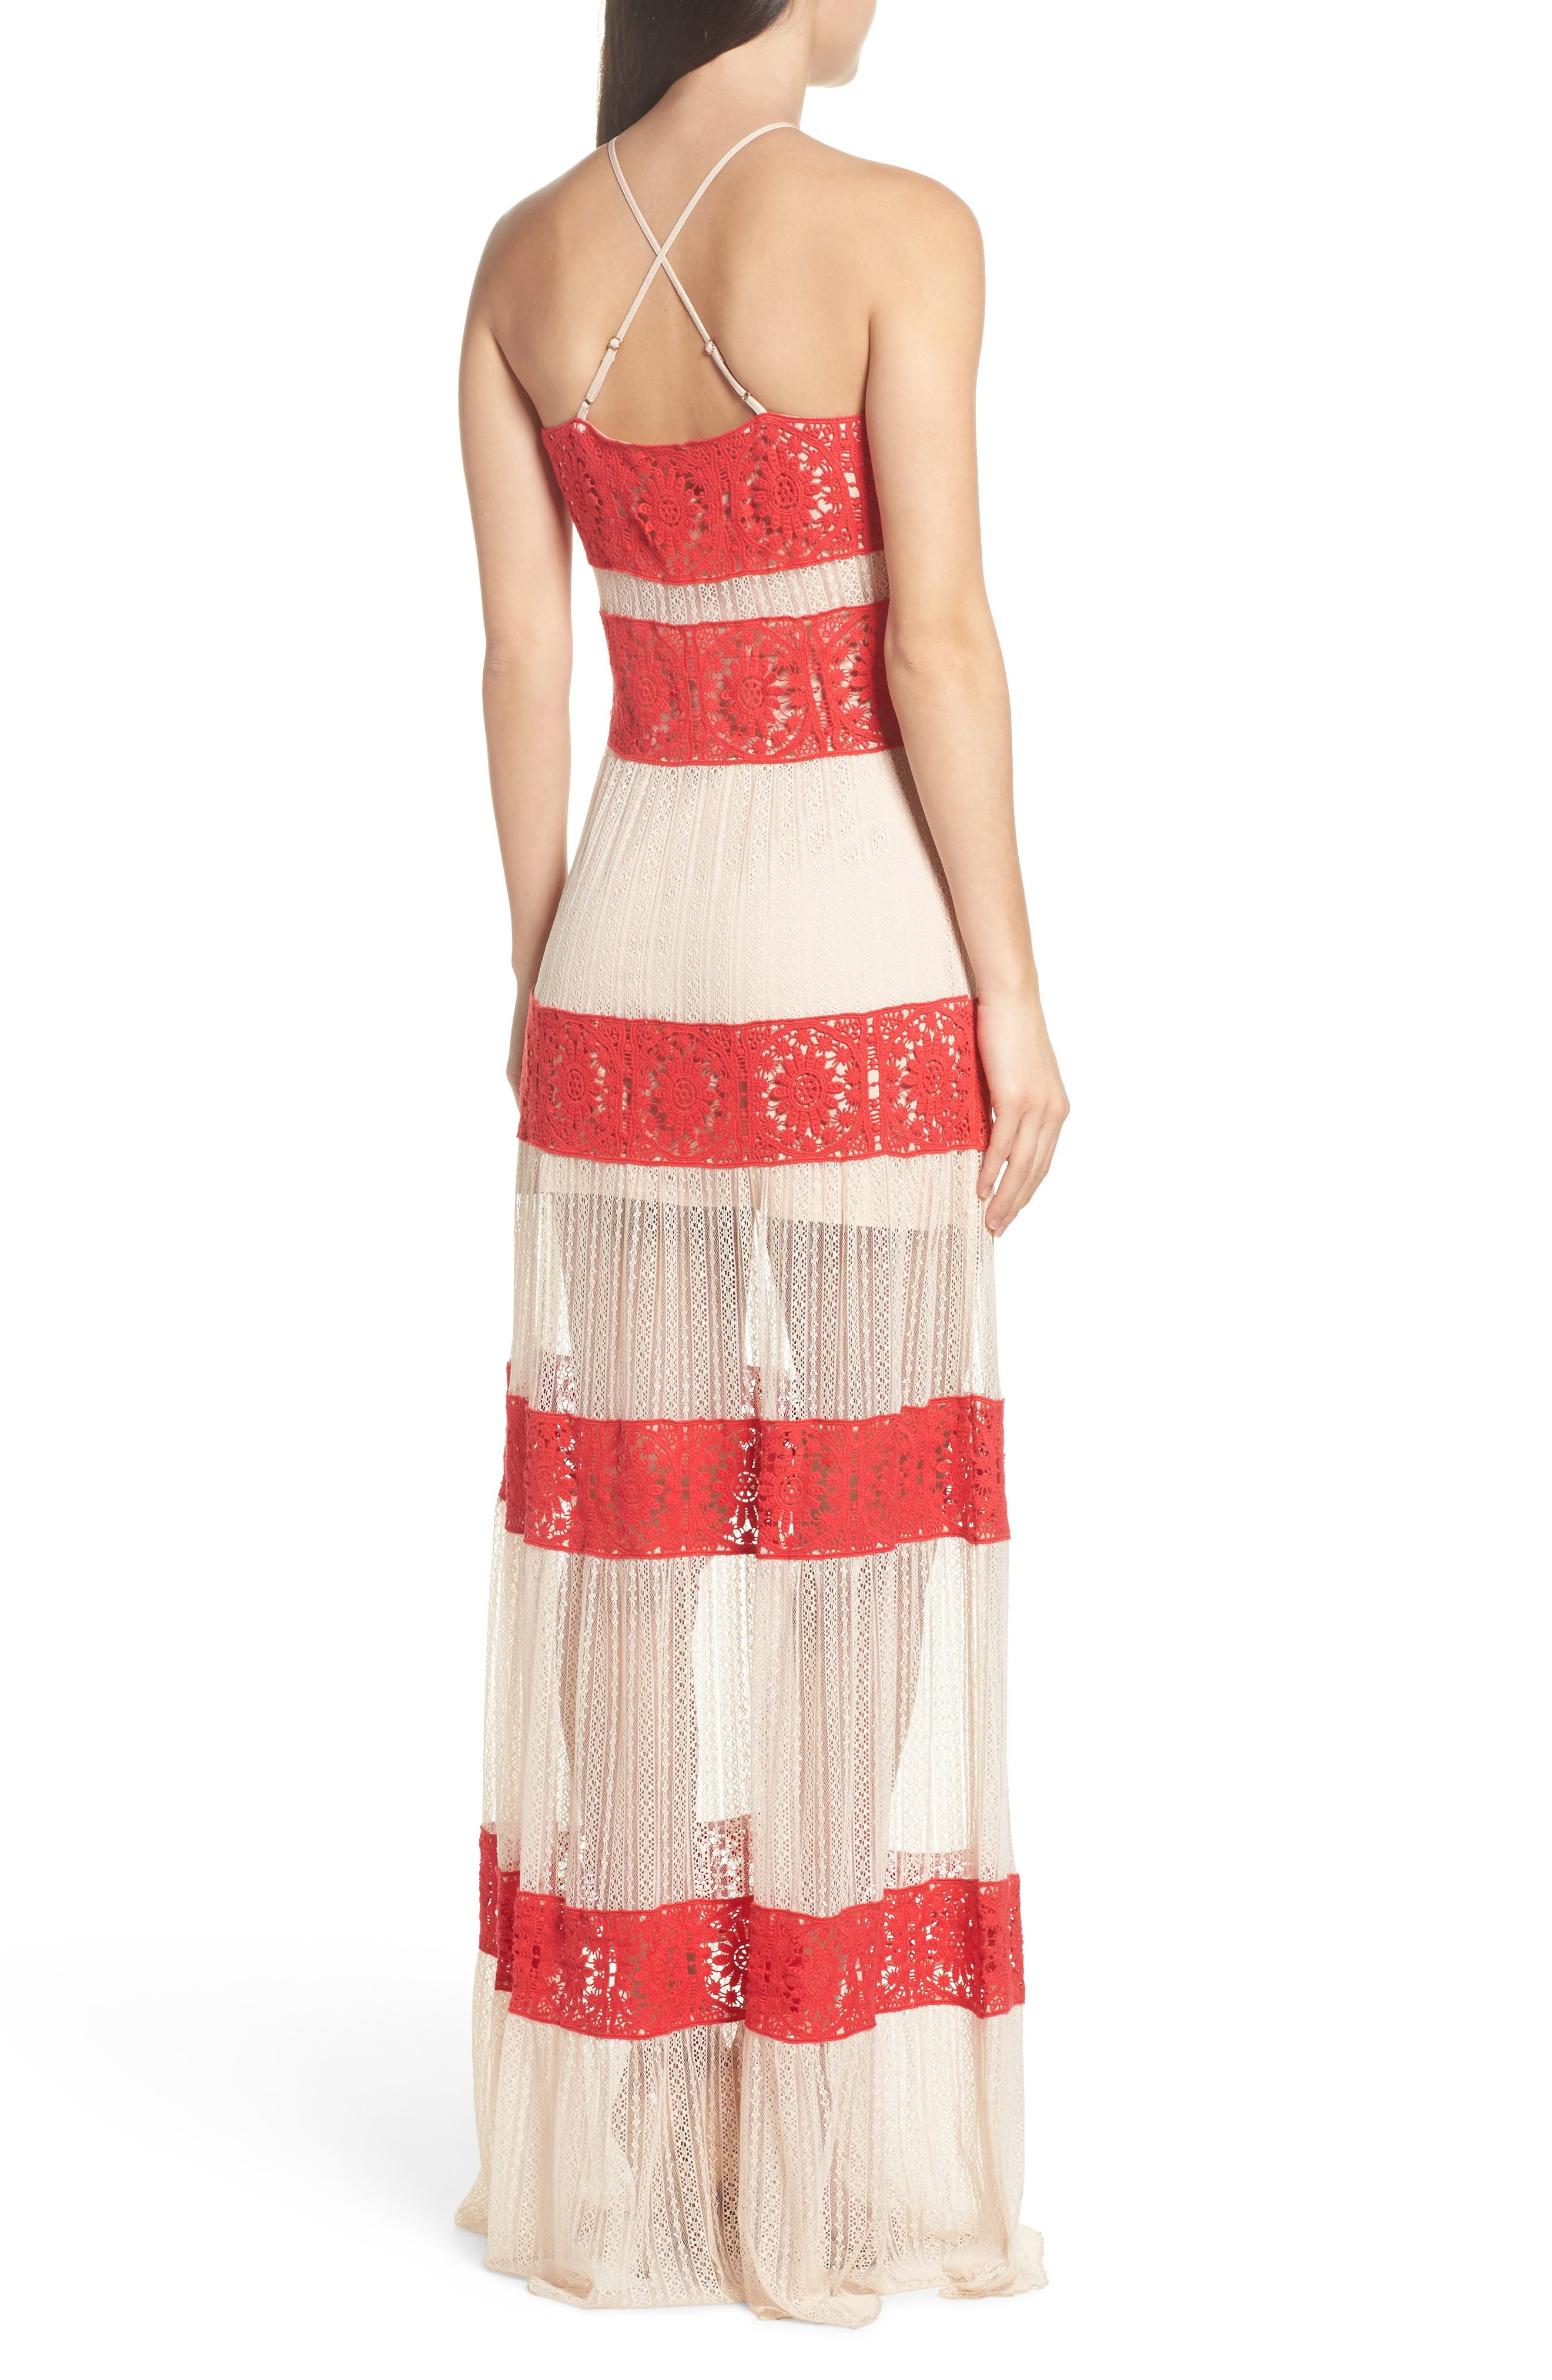 Ophelia Two-Tone Lace Maxi Dress,                             Alternate thumbnail 2, color,                             Red/ Nude